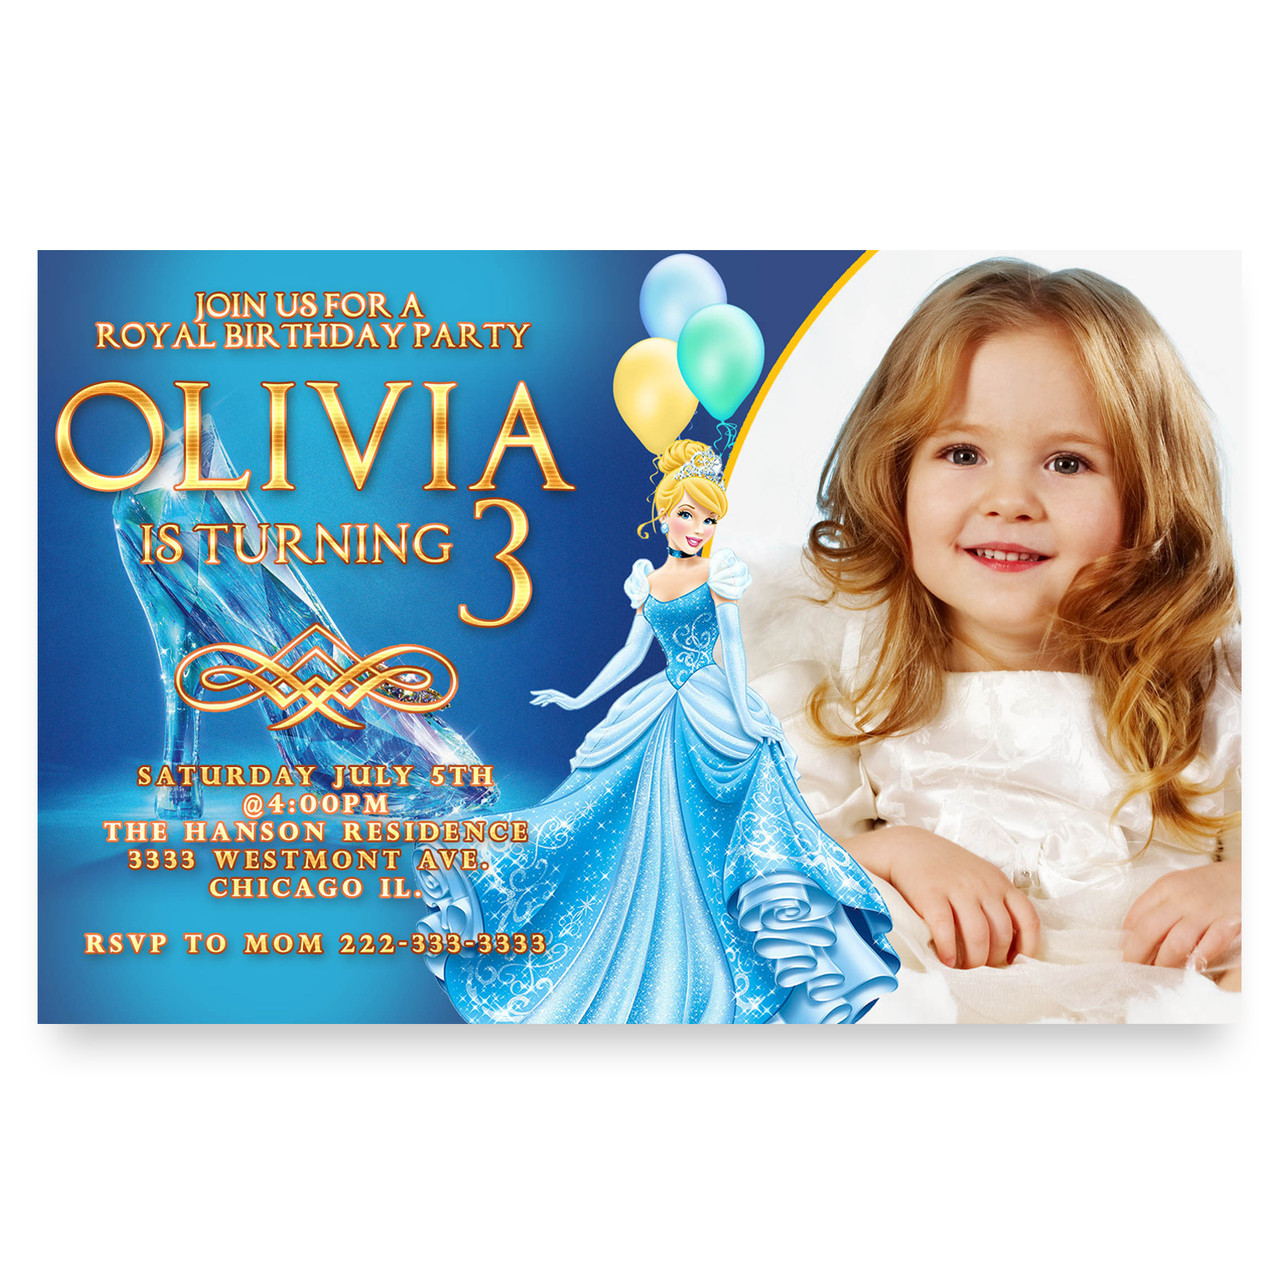 Cinderella birthday party invitation Princess birthday party